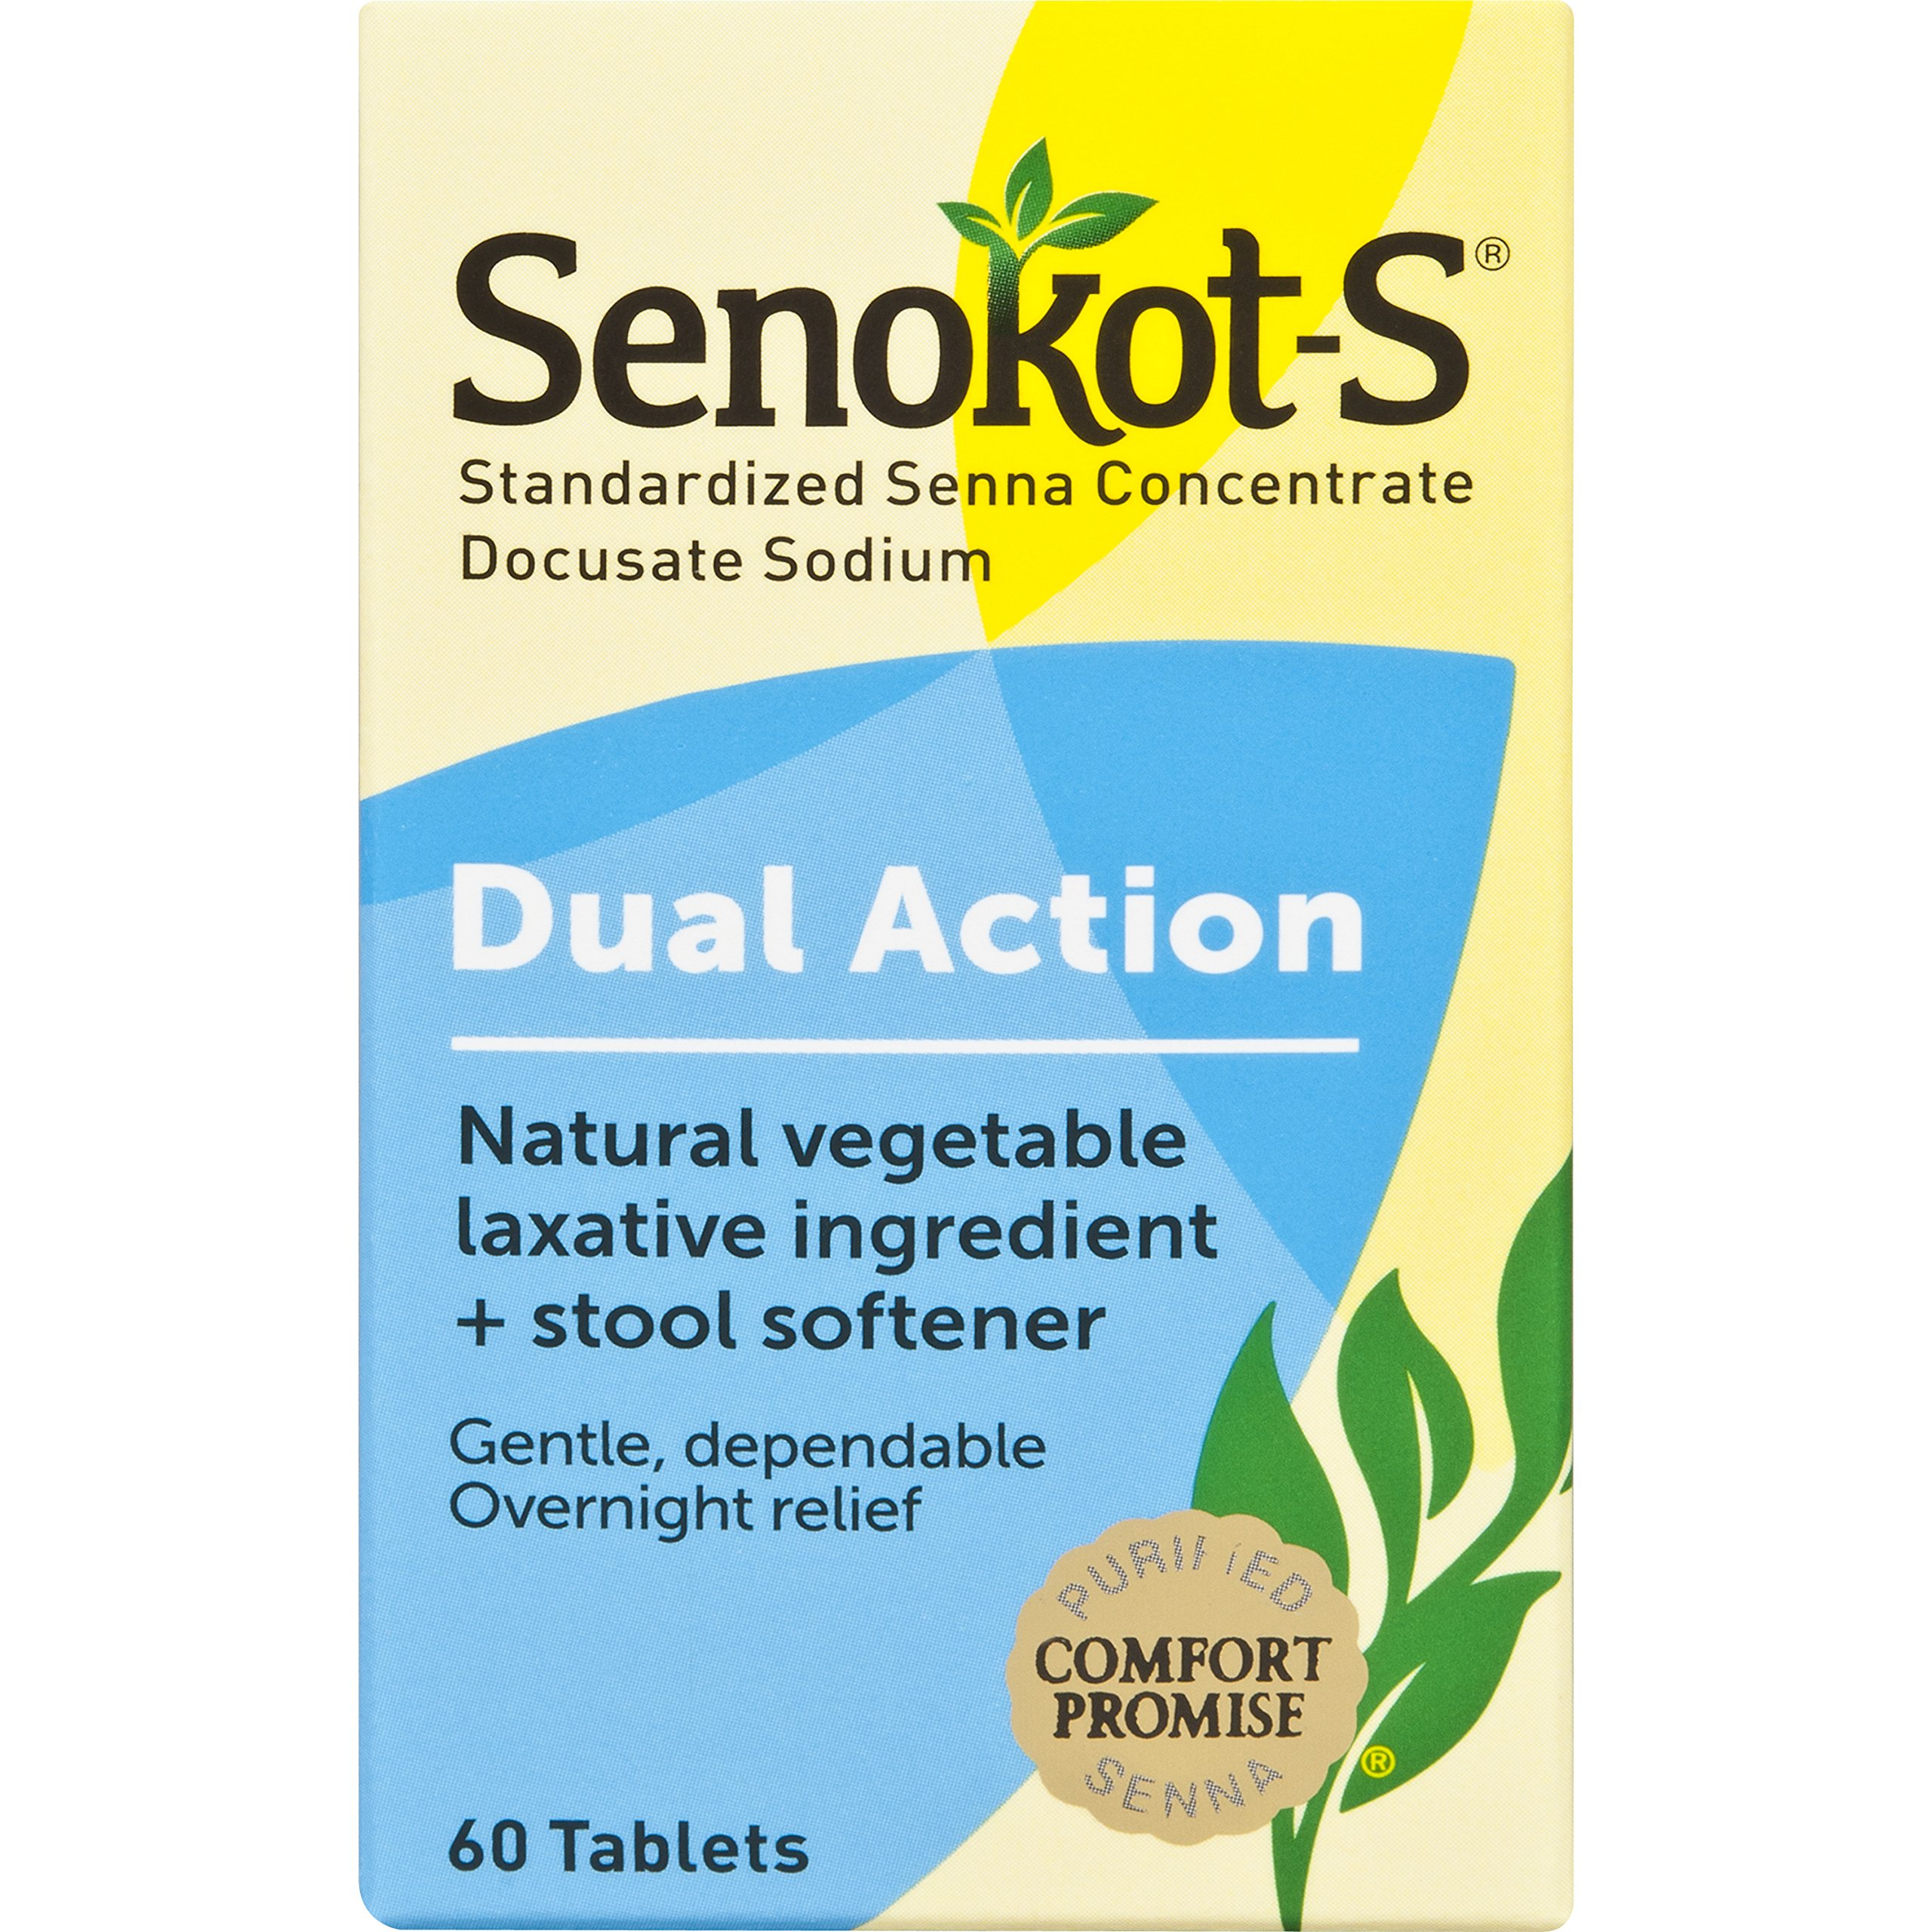 Senokot-S Dual Action 60 Tablets, Natural Vegetable Laxative Ingredient Plus Stool Softener Tablets, Gentle Dependable Overnight Relief of Occasional constipation by Purdue Products L.P.